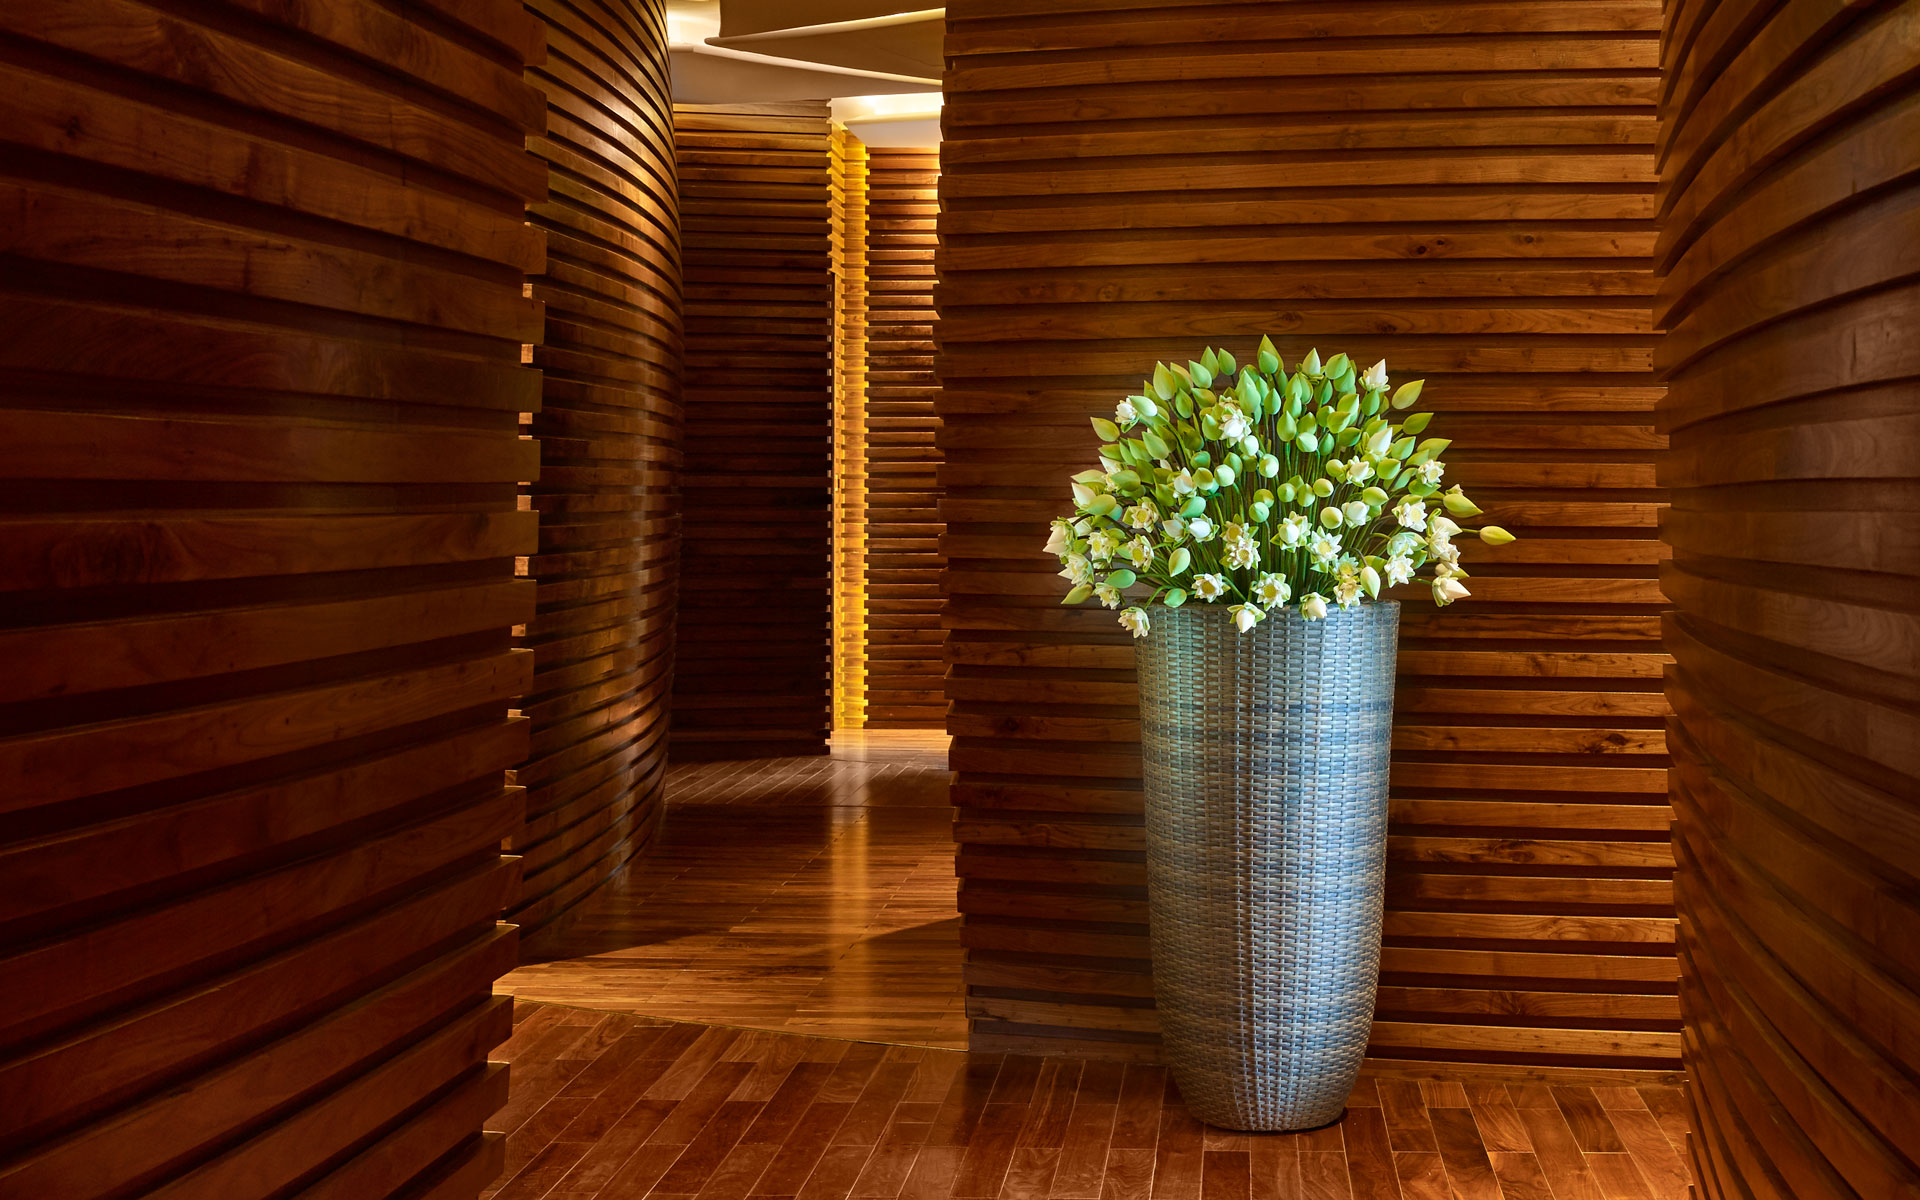 Photograph of a Spa detail taken by spa detail by MATTHEW SHAW Hotel Photographer